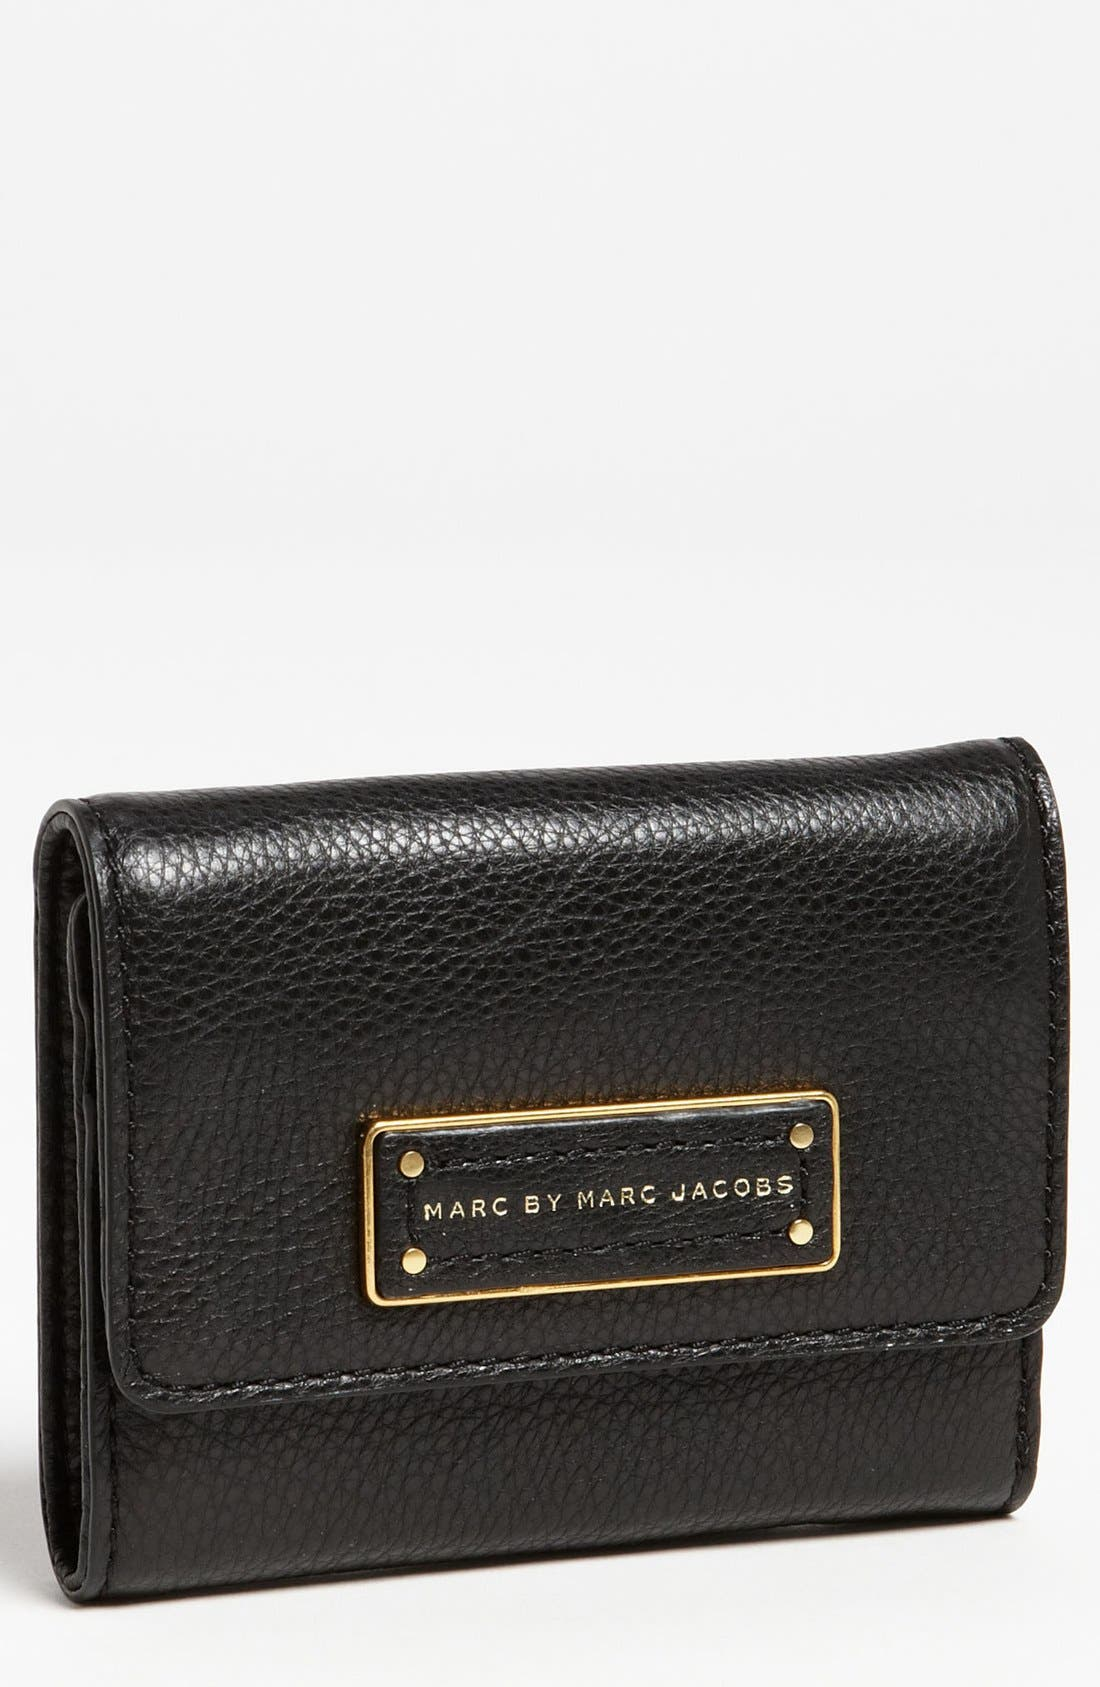 MARC BY MARC JACOBS 'Too Hot to Handle' Billfold Wallet,                         Main,                         color, Black